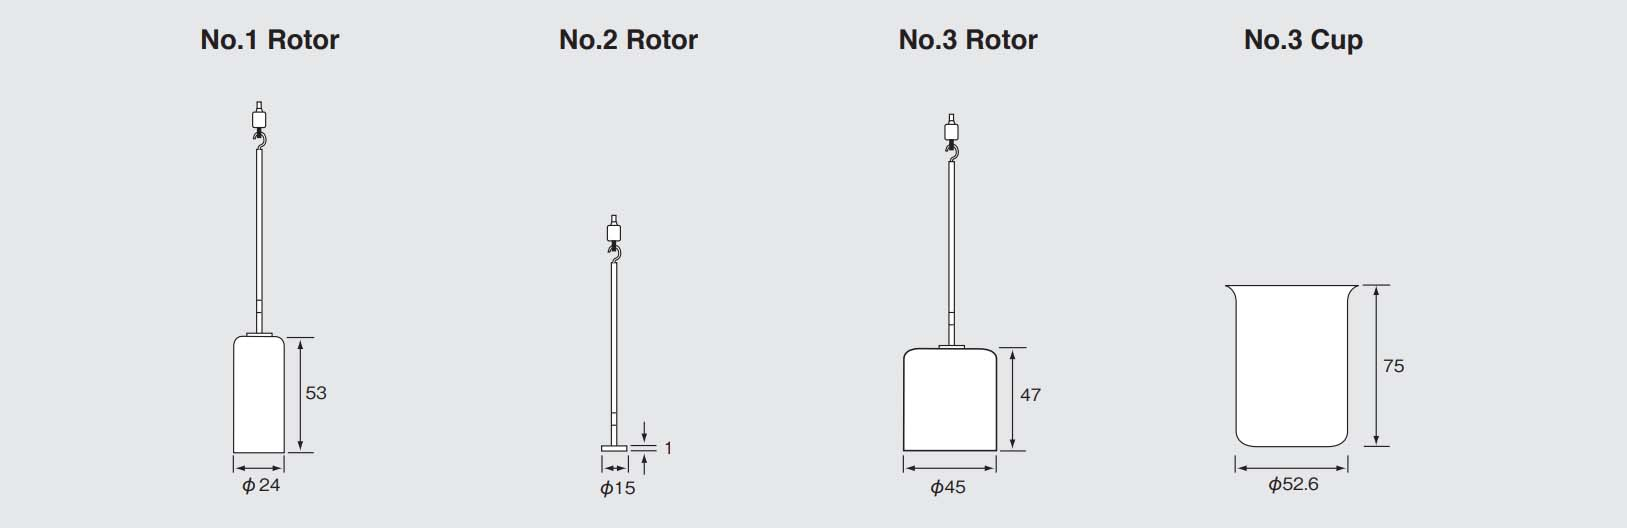 Rotors and Cups (unit: mm)